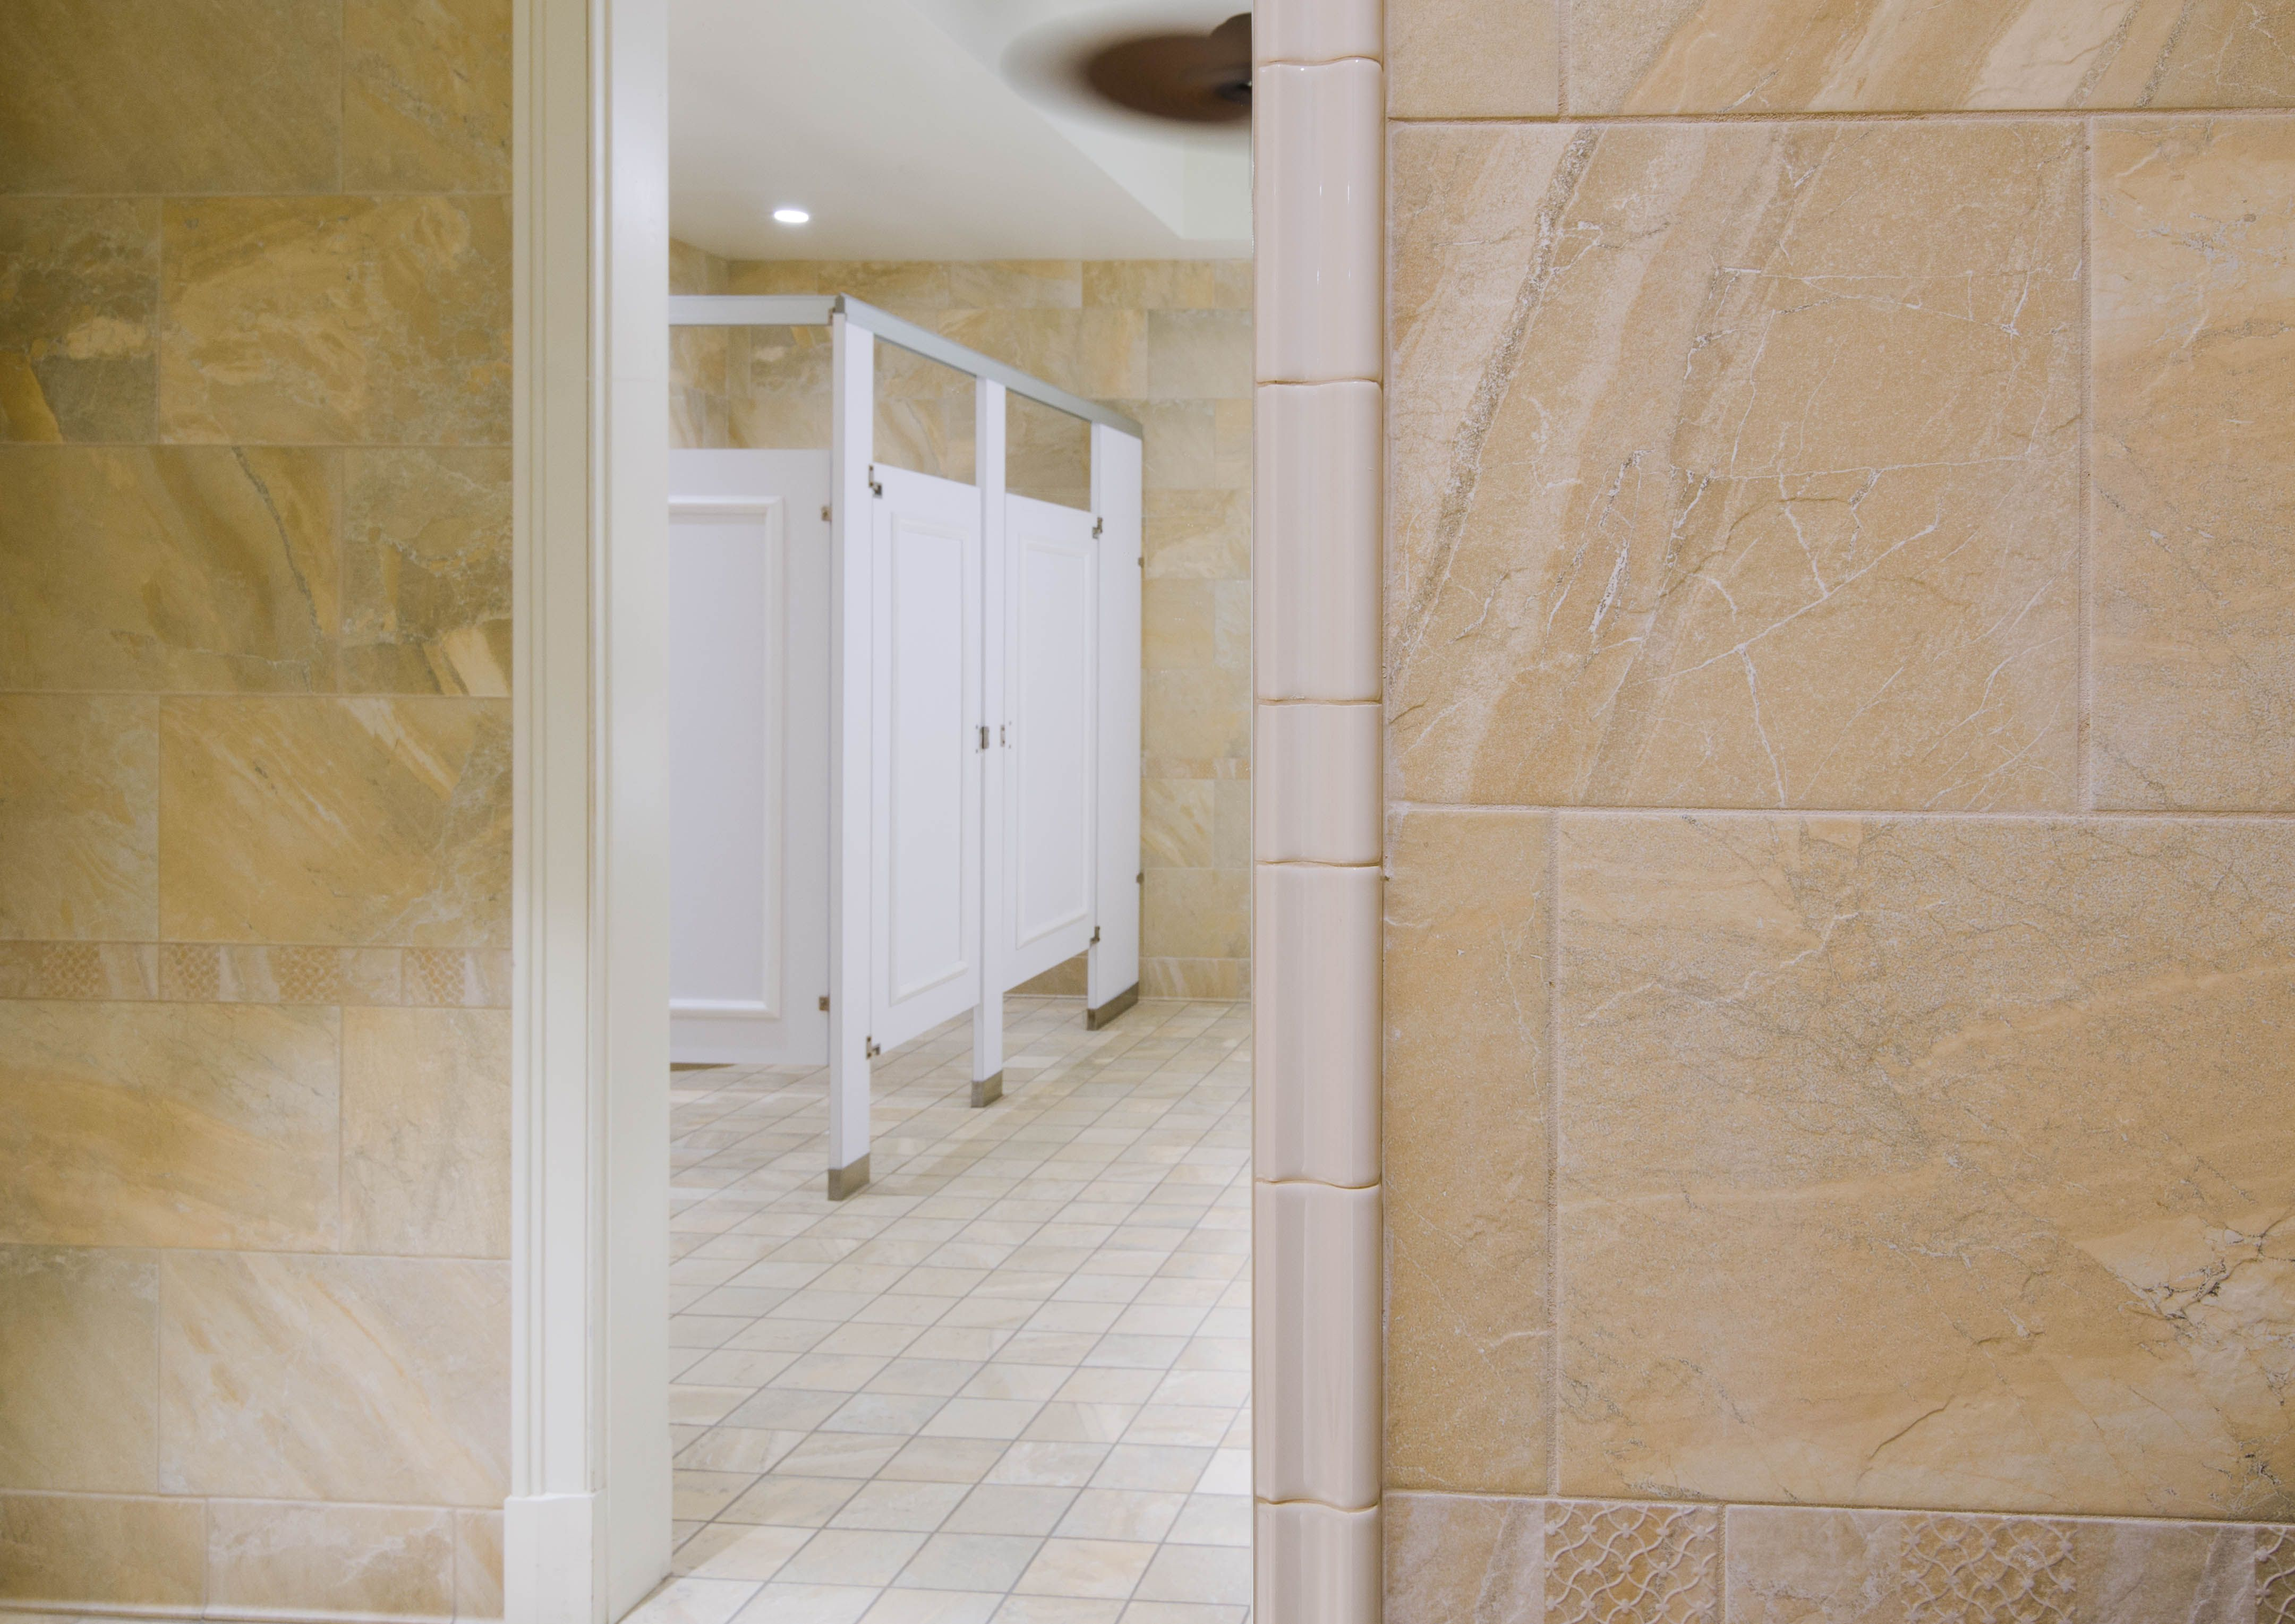 Ironwood Manufacturing laminate toilet partitions and bathroom doors with molding. Beautiful upscale public restroom & Ironwood Manufacturing laminate toilet partitions and bathroom ... pezcame.com